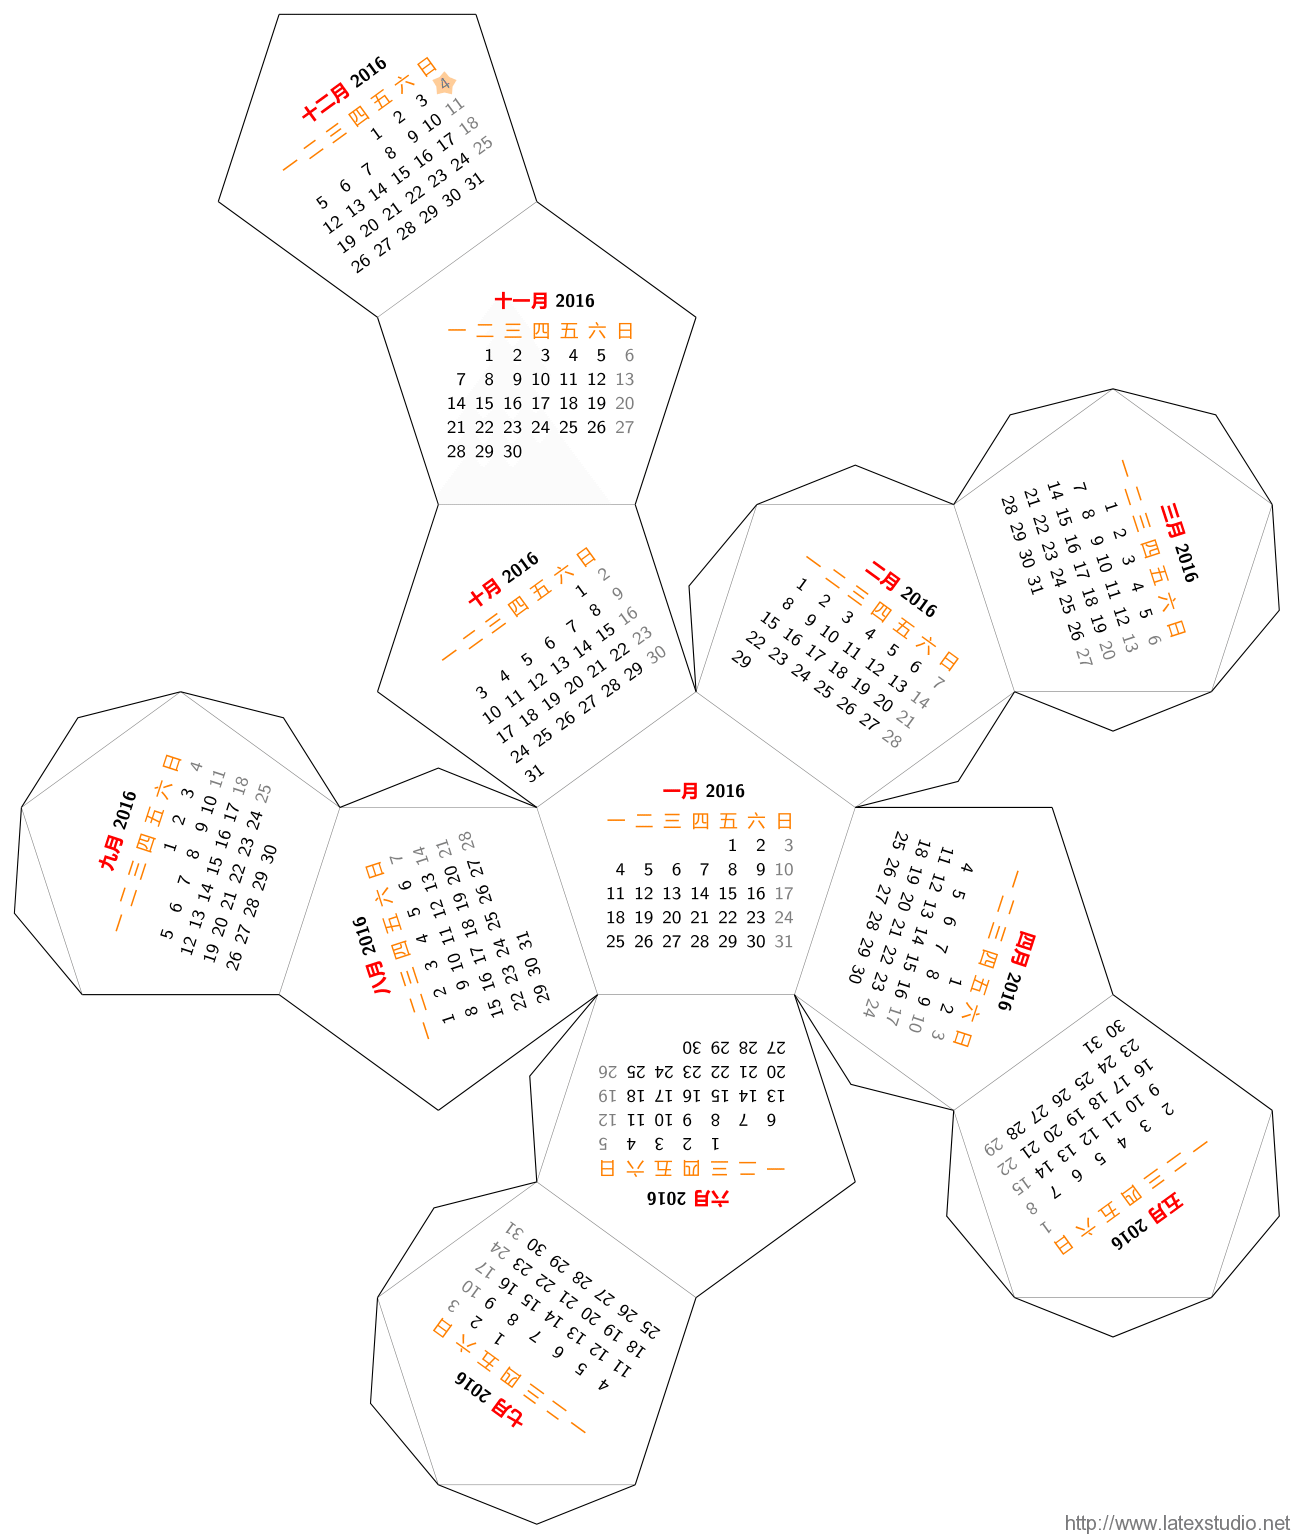 zh-calendar-dodecahedron-1